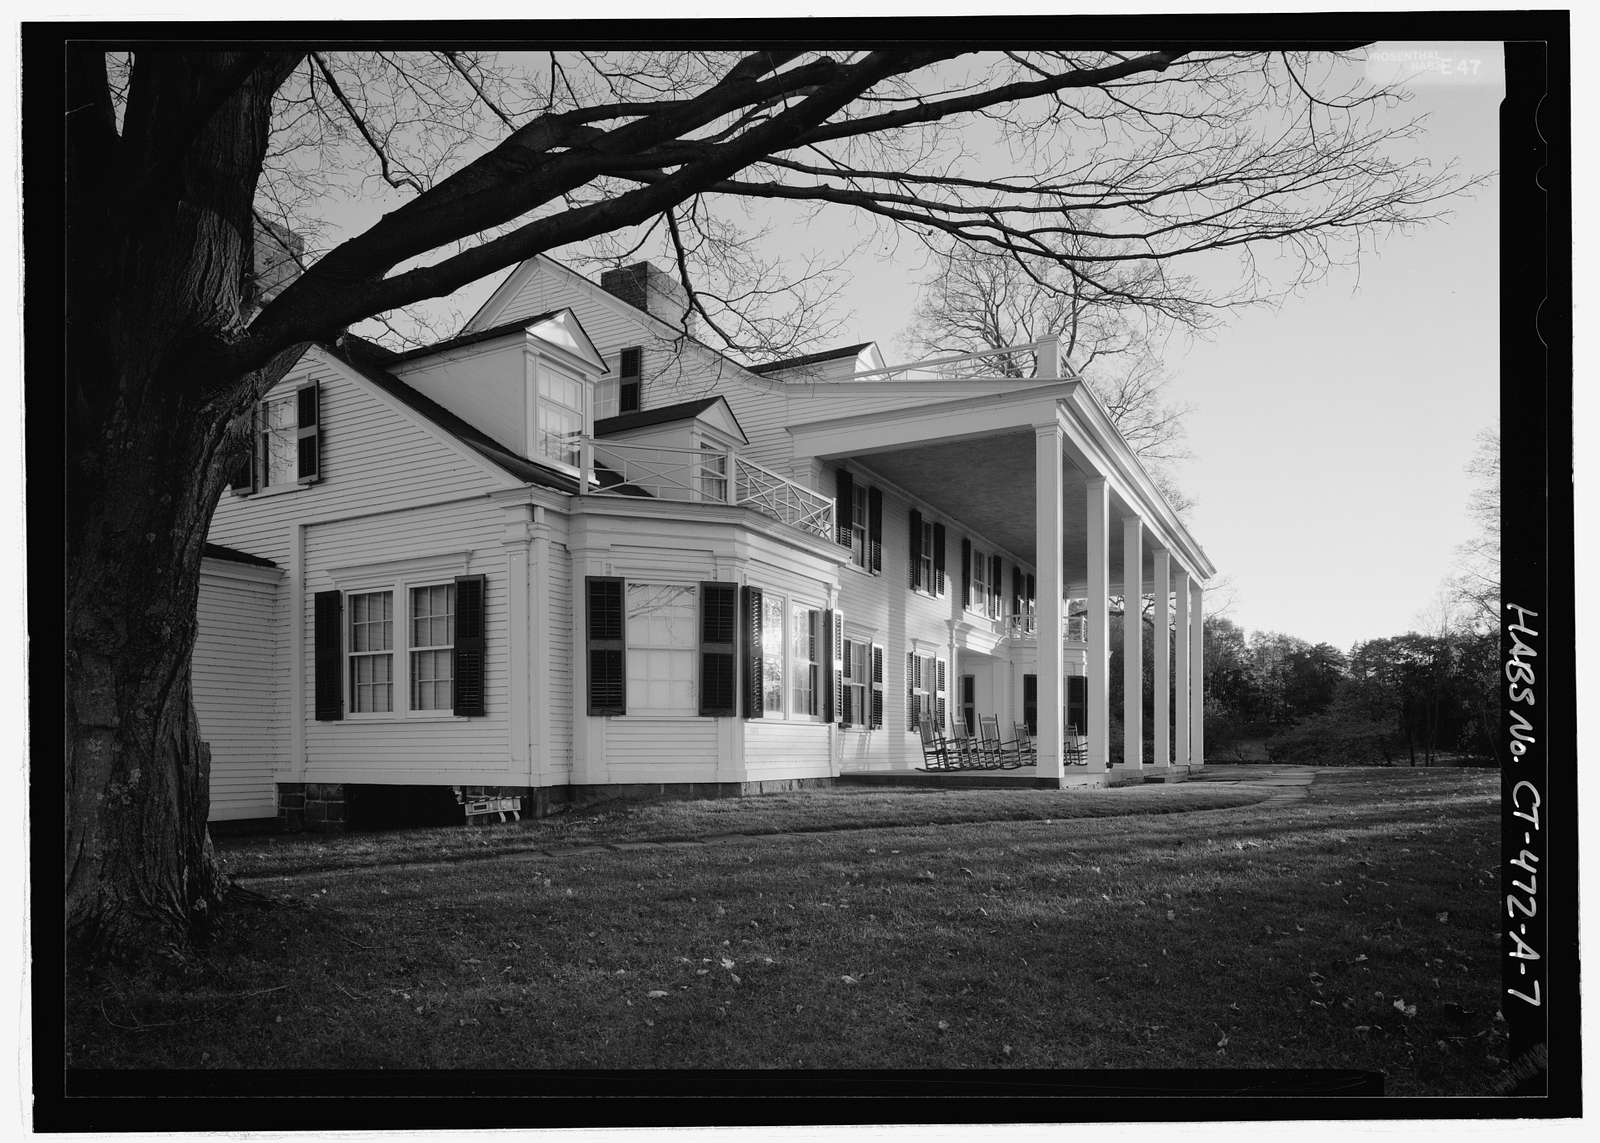 Hill-Stead, Pope-Riddle House Complex, 35 Mountain Road, Farmington, Hartford County, CT